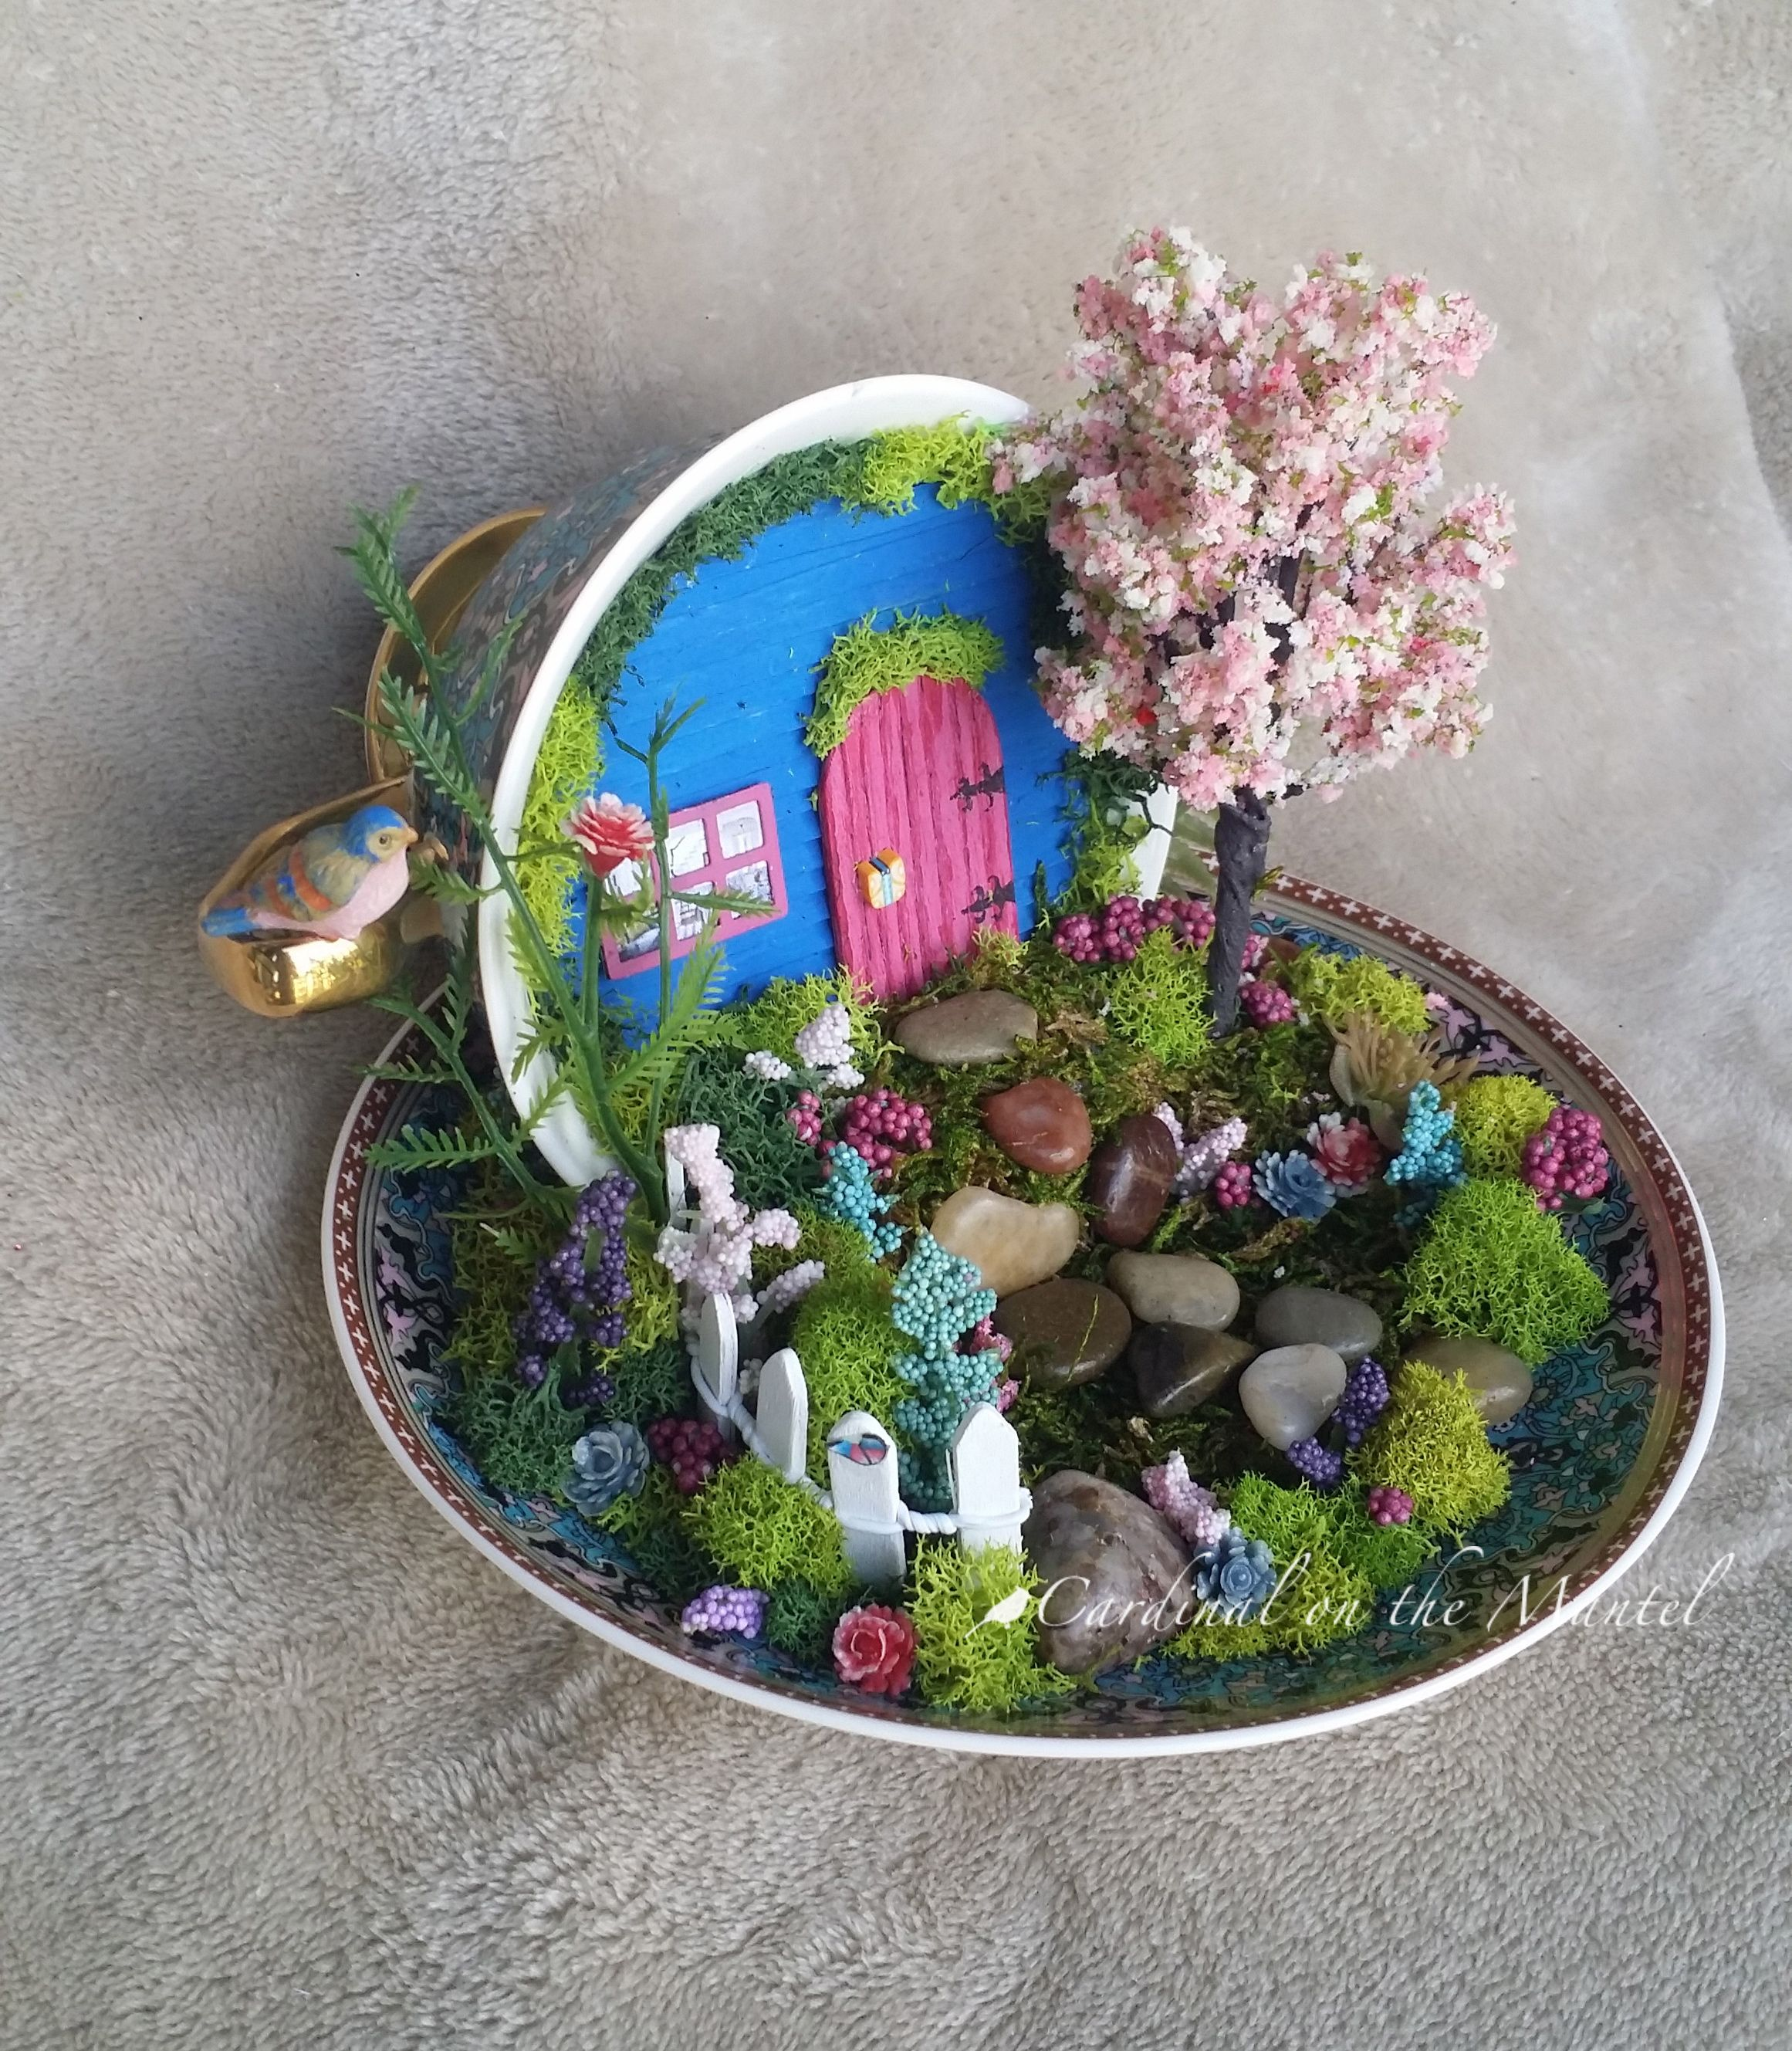 Edible Landscaping And Fairy Gardens: Teacup Fairy Garden, Featured On CountyLiving.com April